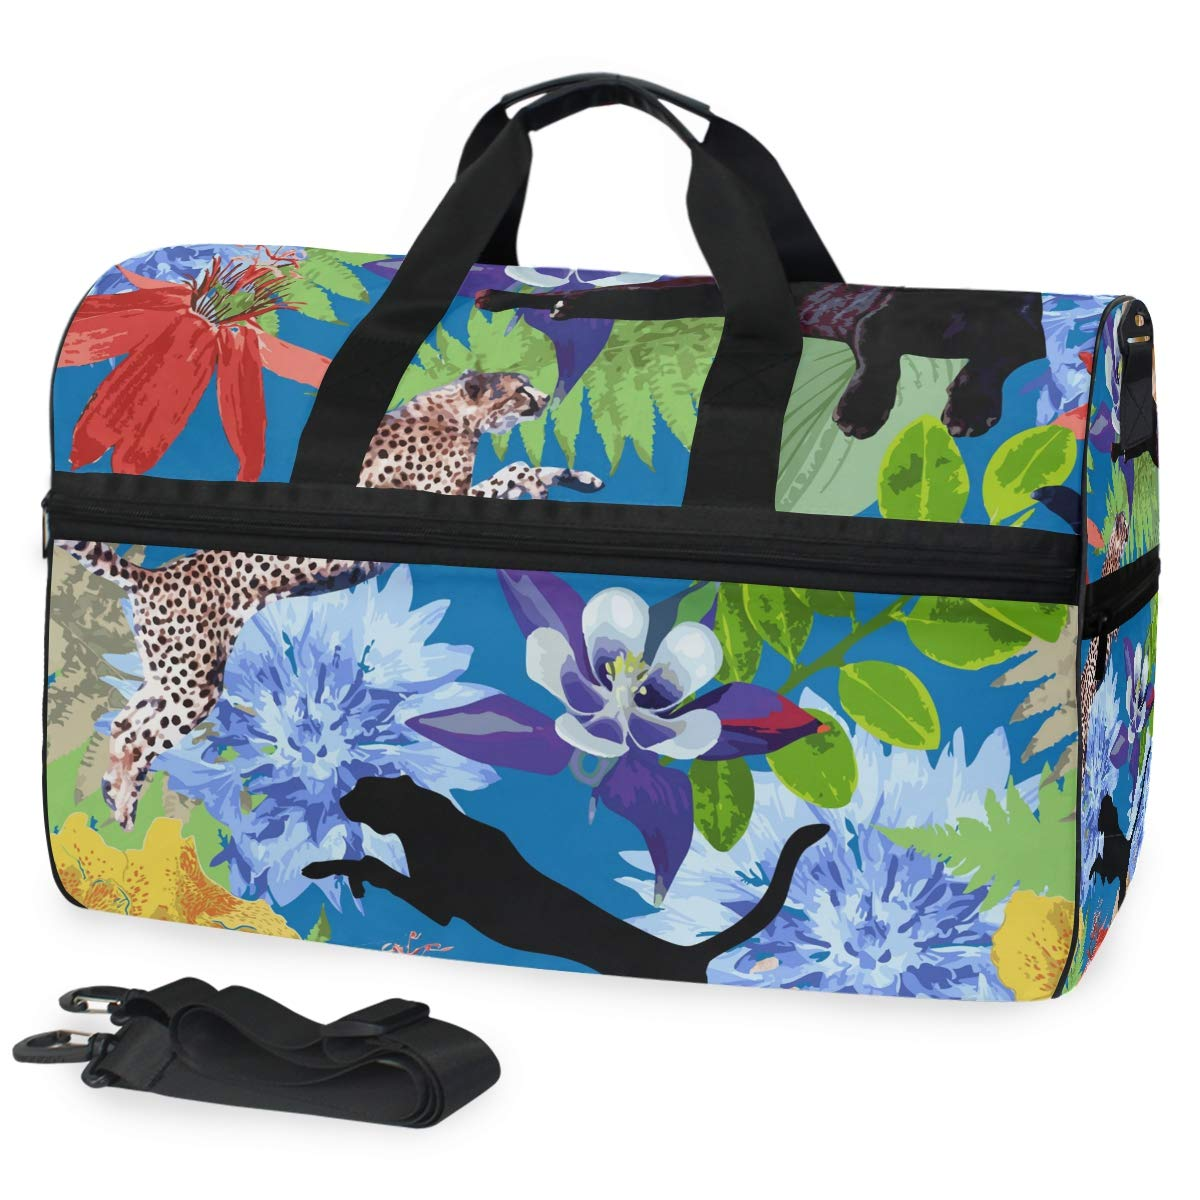 Travel Duffel Bag Forest Animals Waterproof Lightweight Luggage bag for Sports Gym Vacation